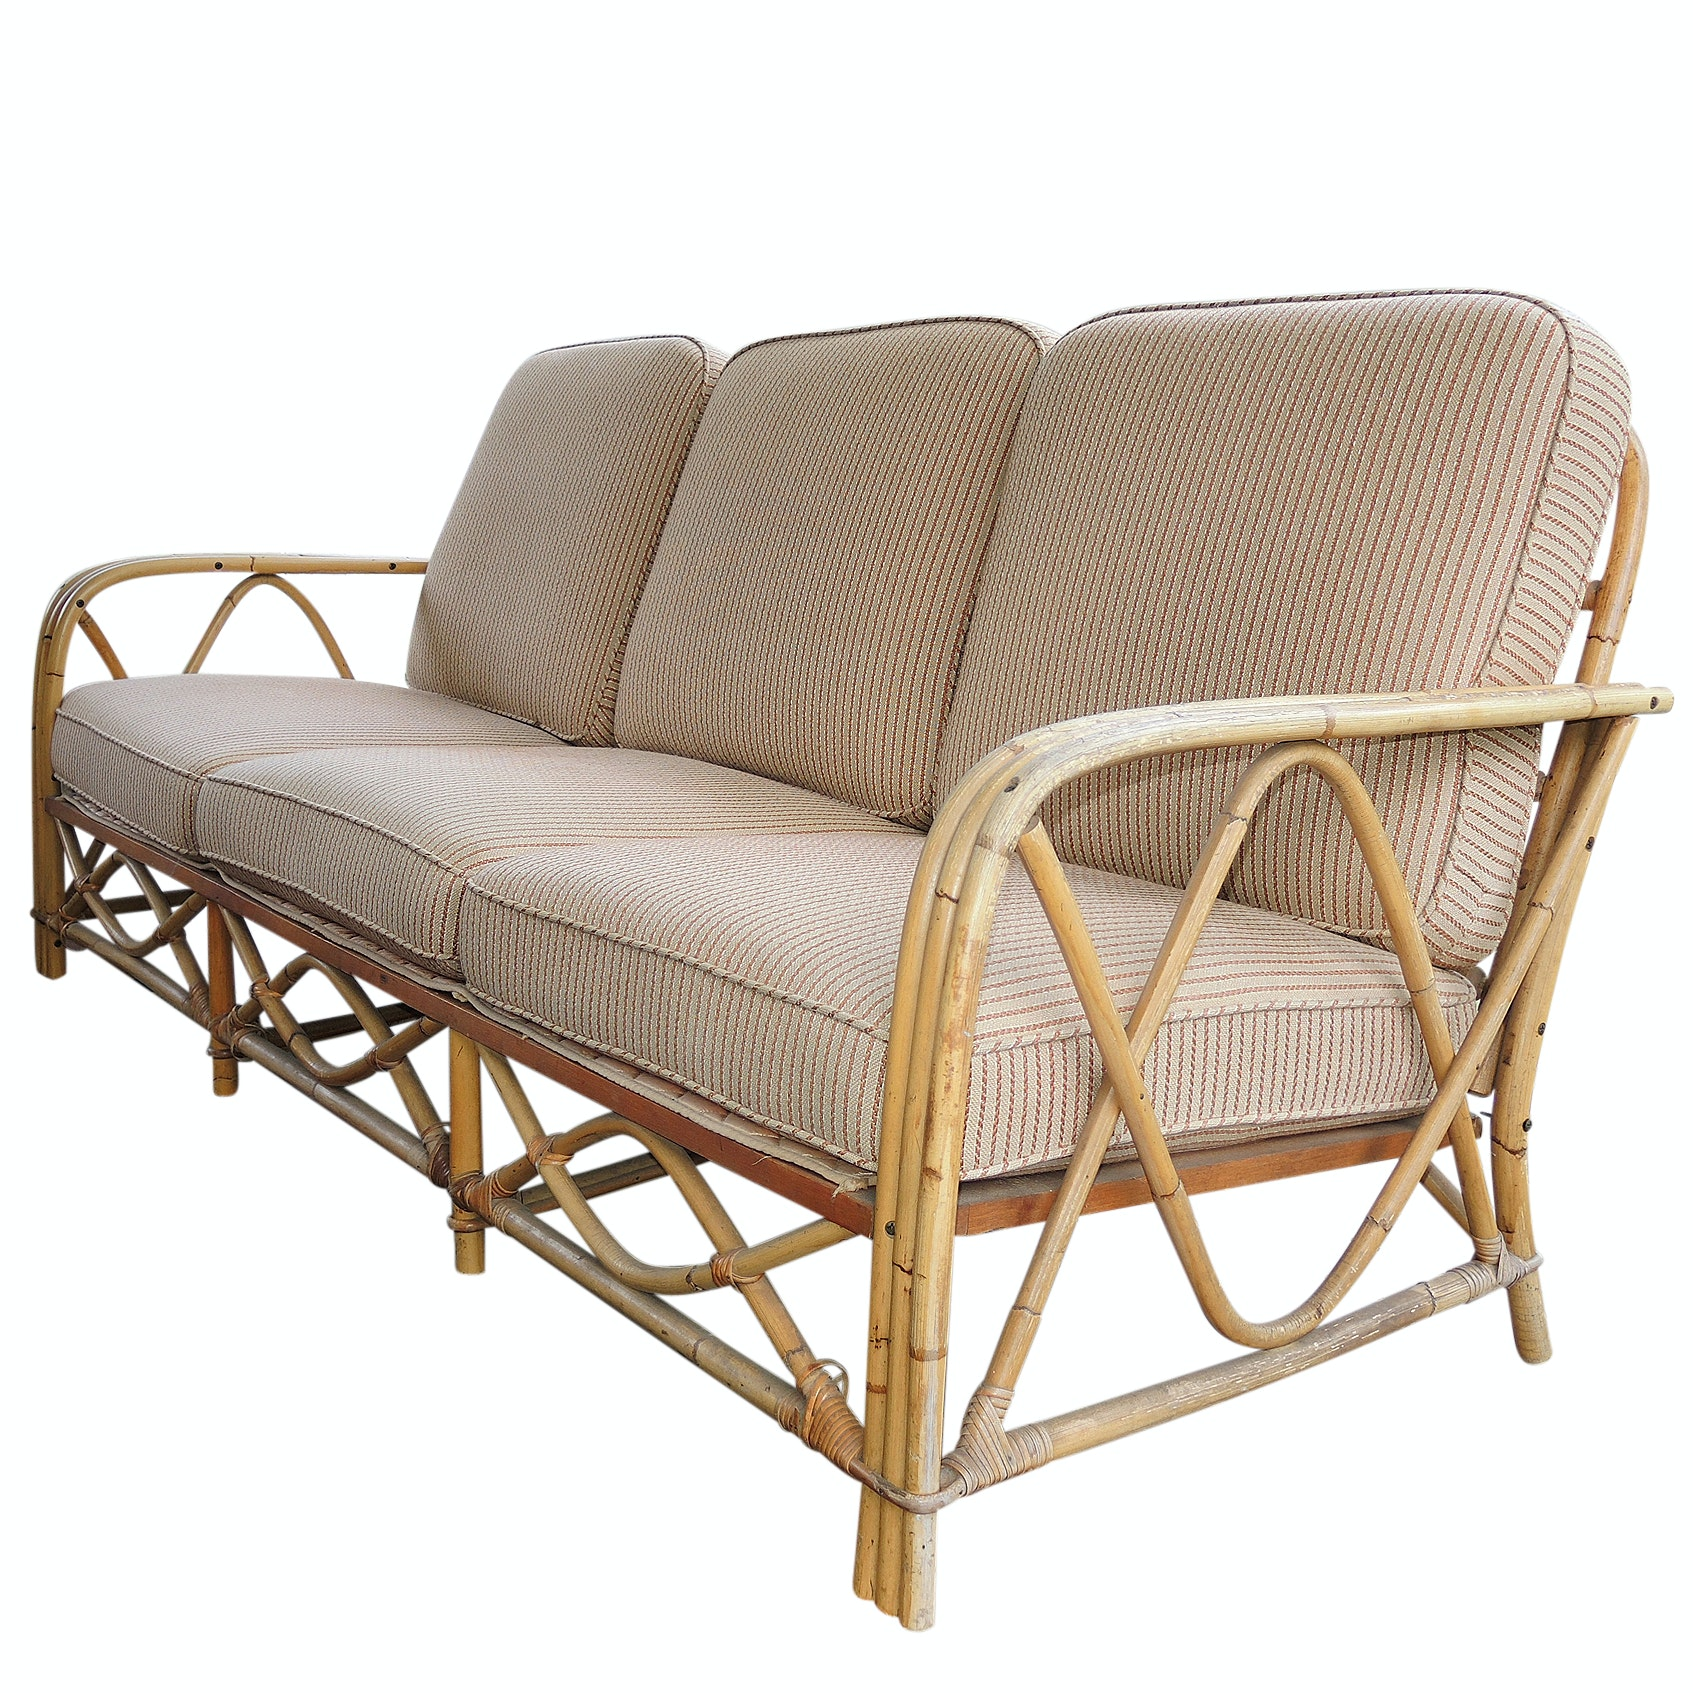 Ficks Reed Bamboo and Rattan Sunroom Sofa